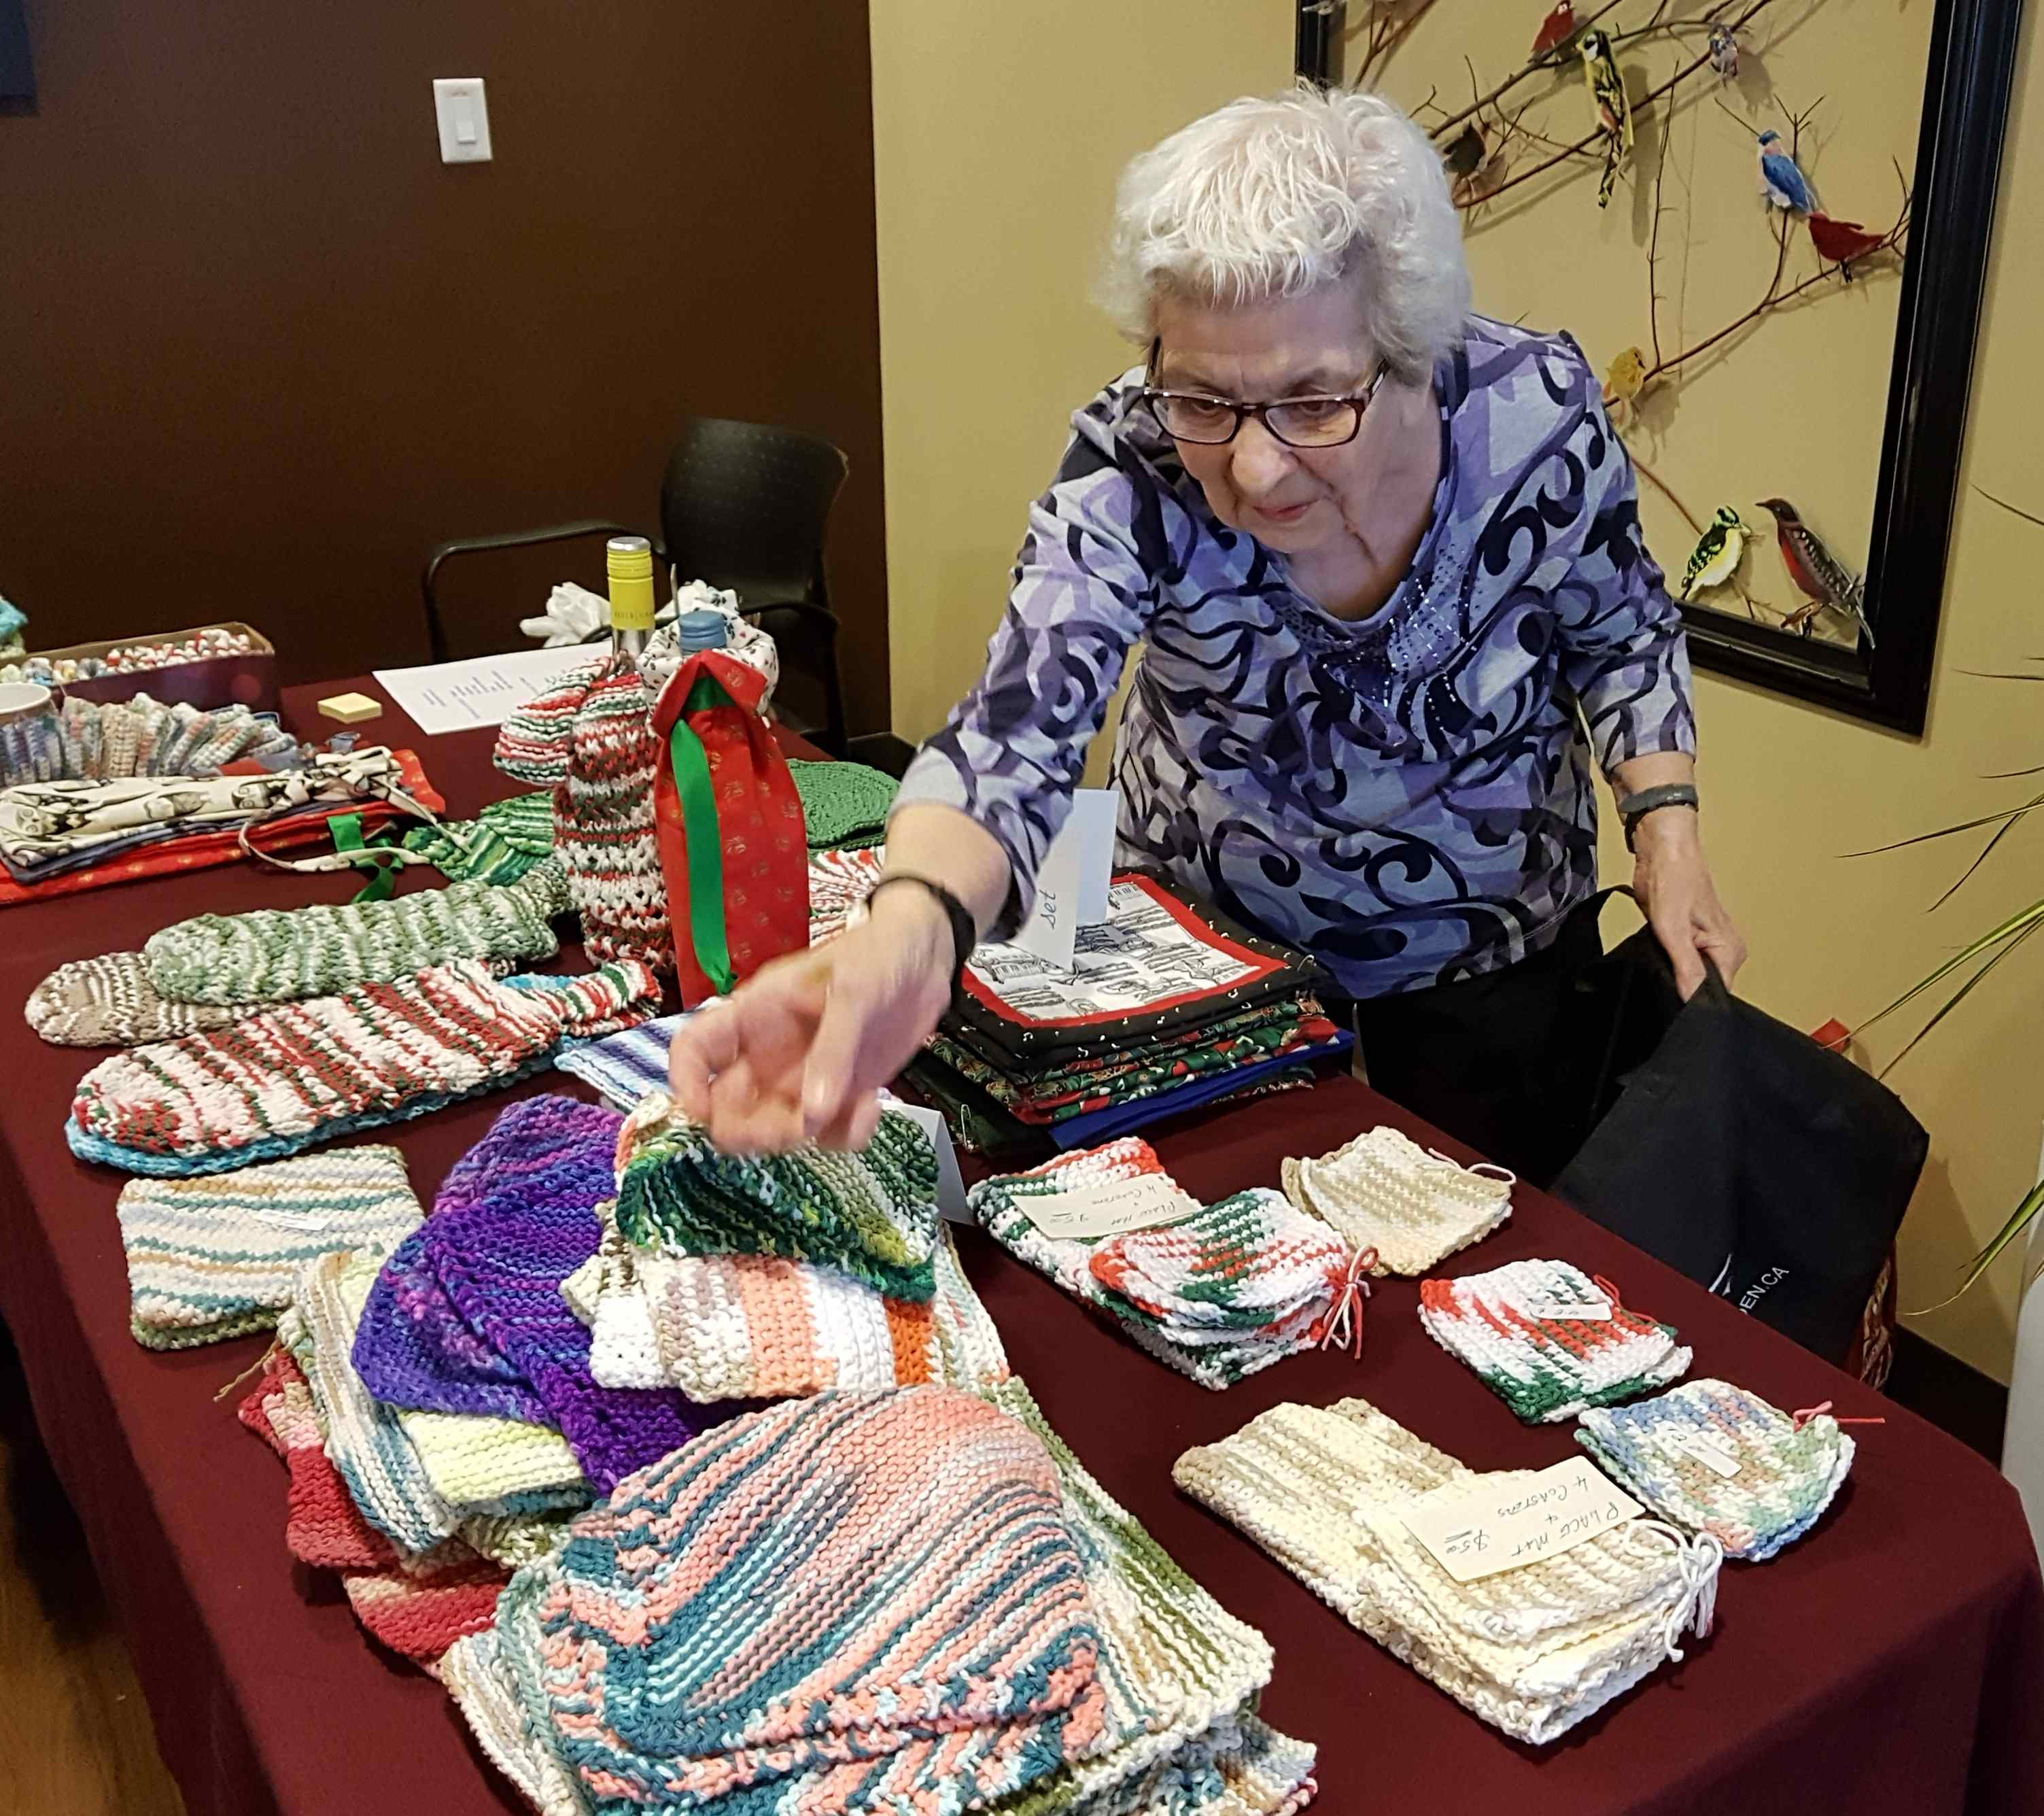 Garrison Green resident Trudy Martin is very active in the community's fibre arts club